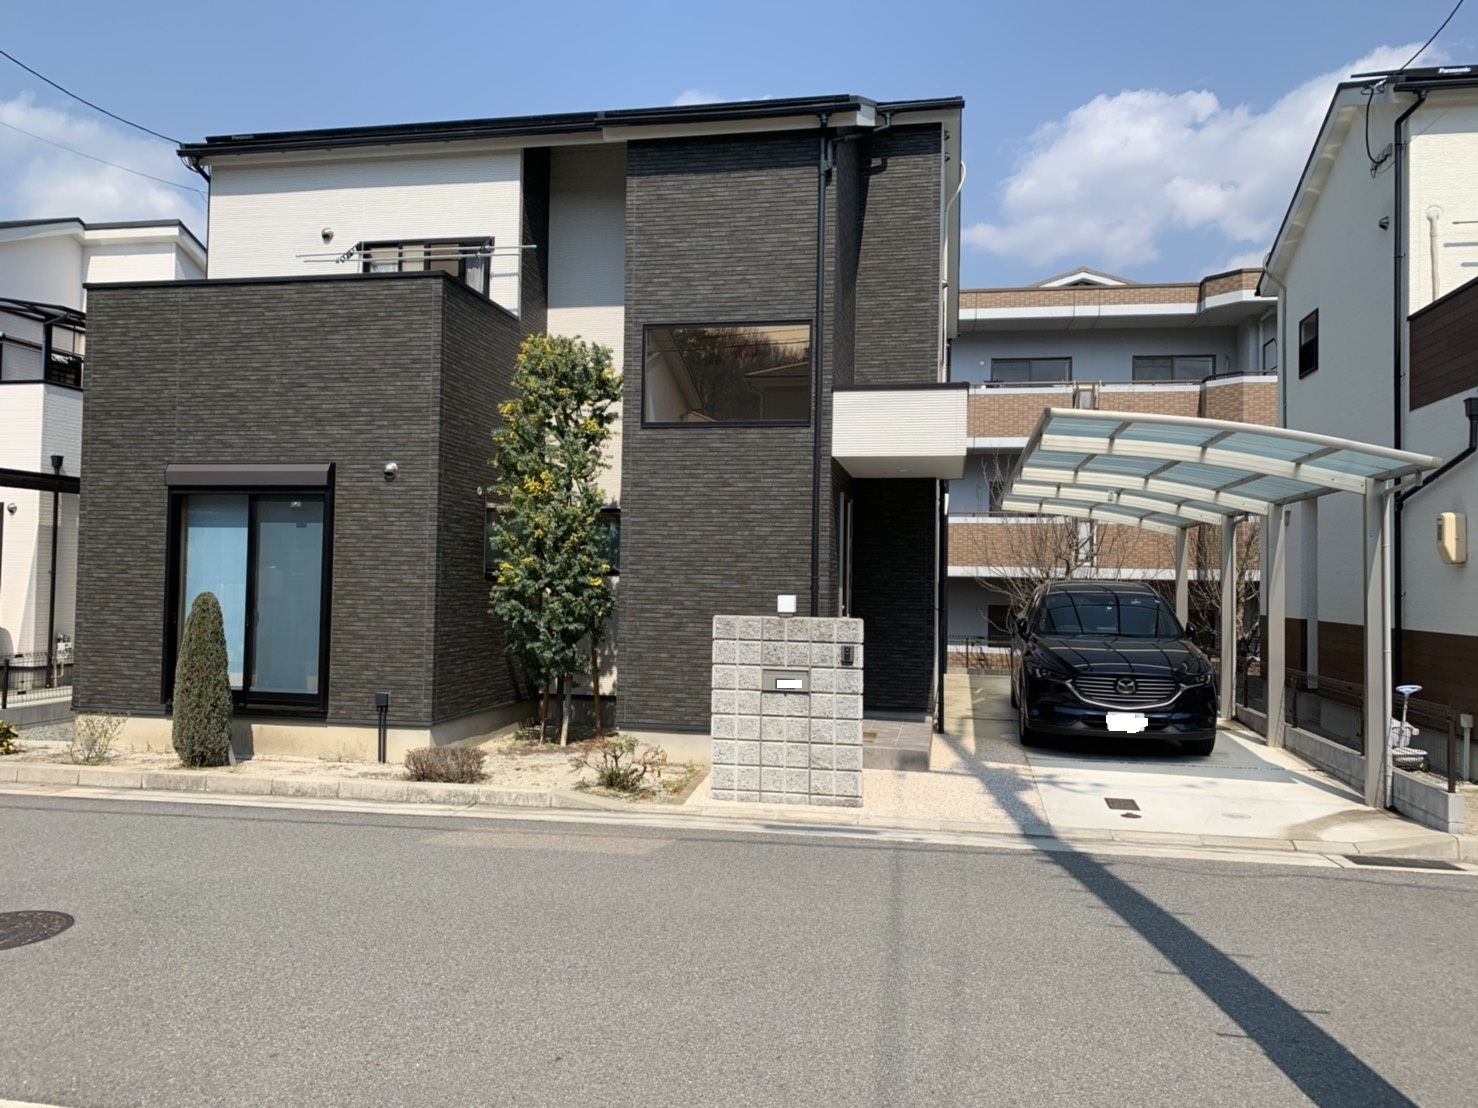 4LDK house in a nice and quiet residential area of Nishinomiya